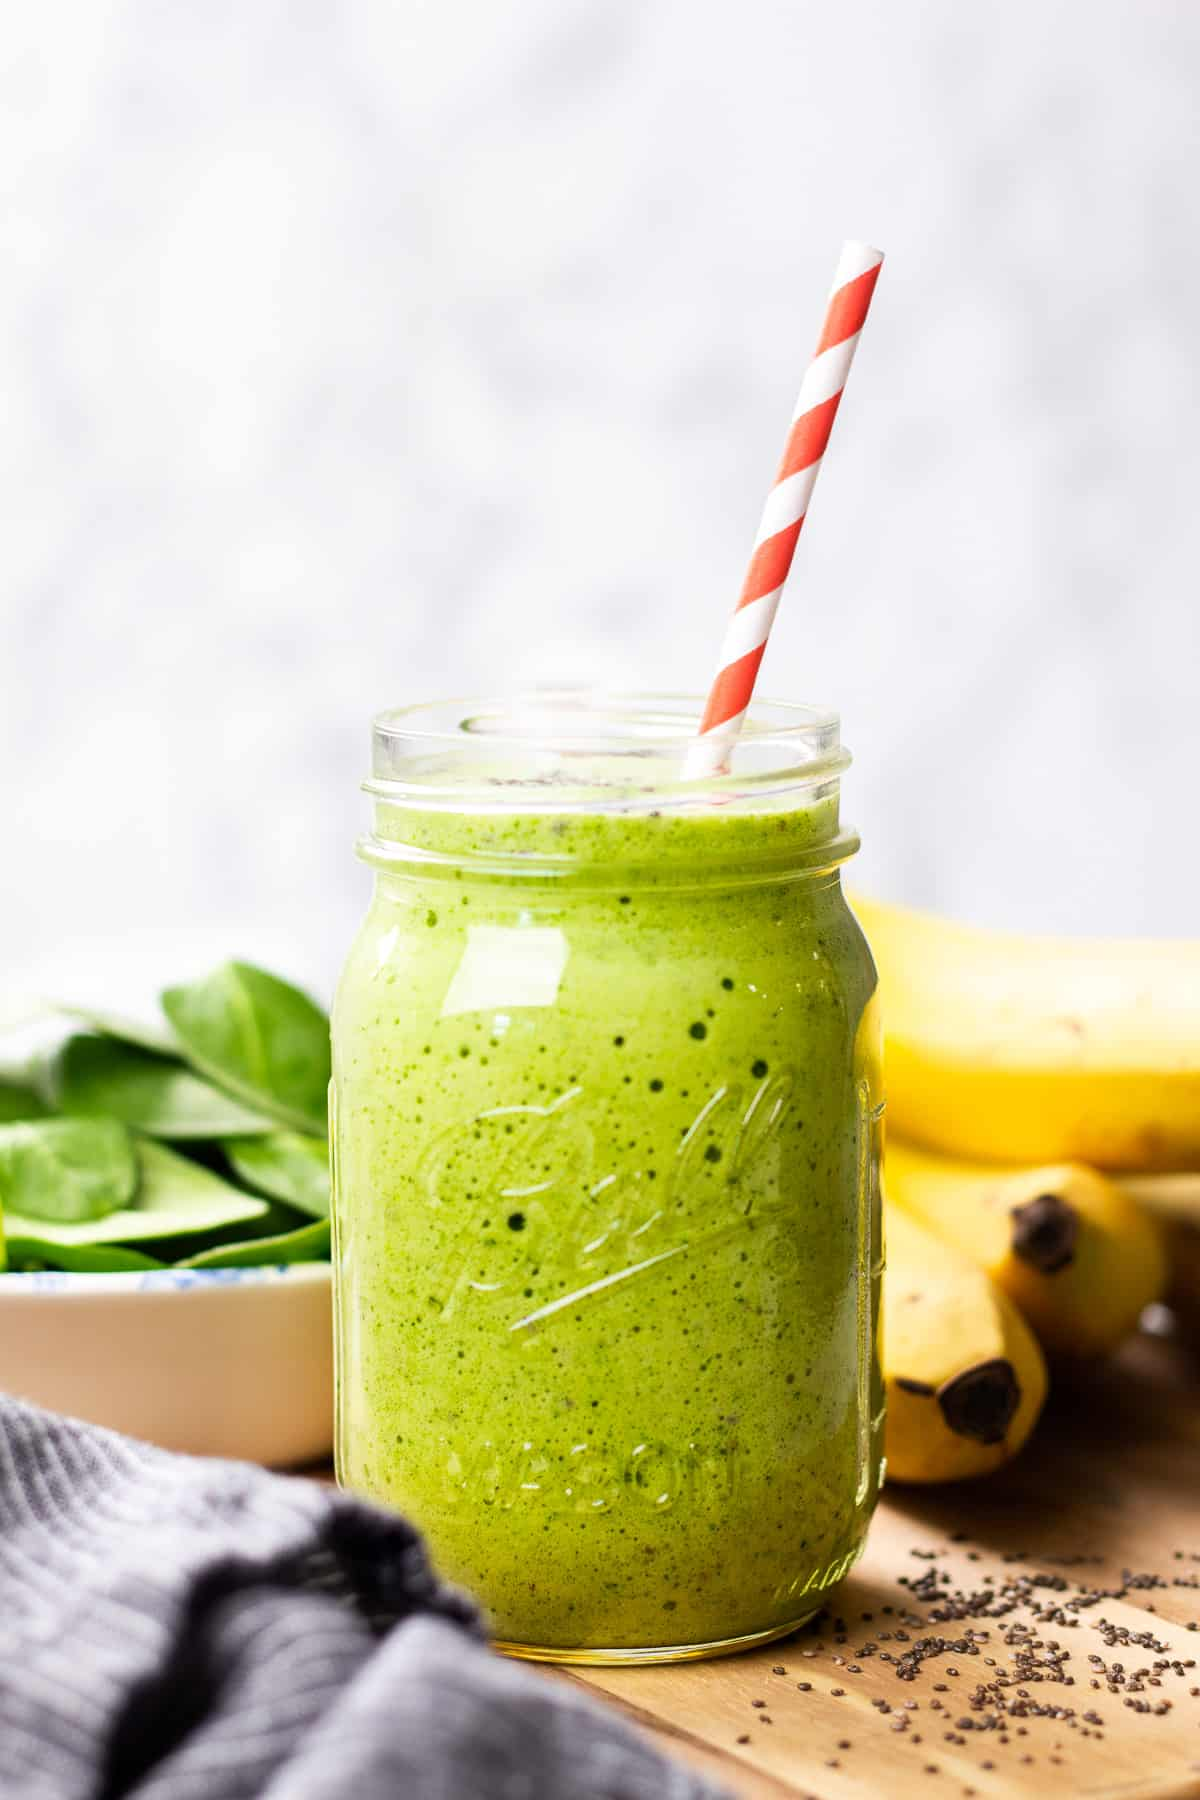 A close up photo of a green smoothie in a Mason jar.